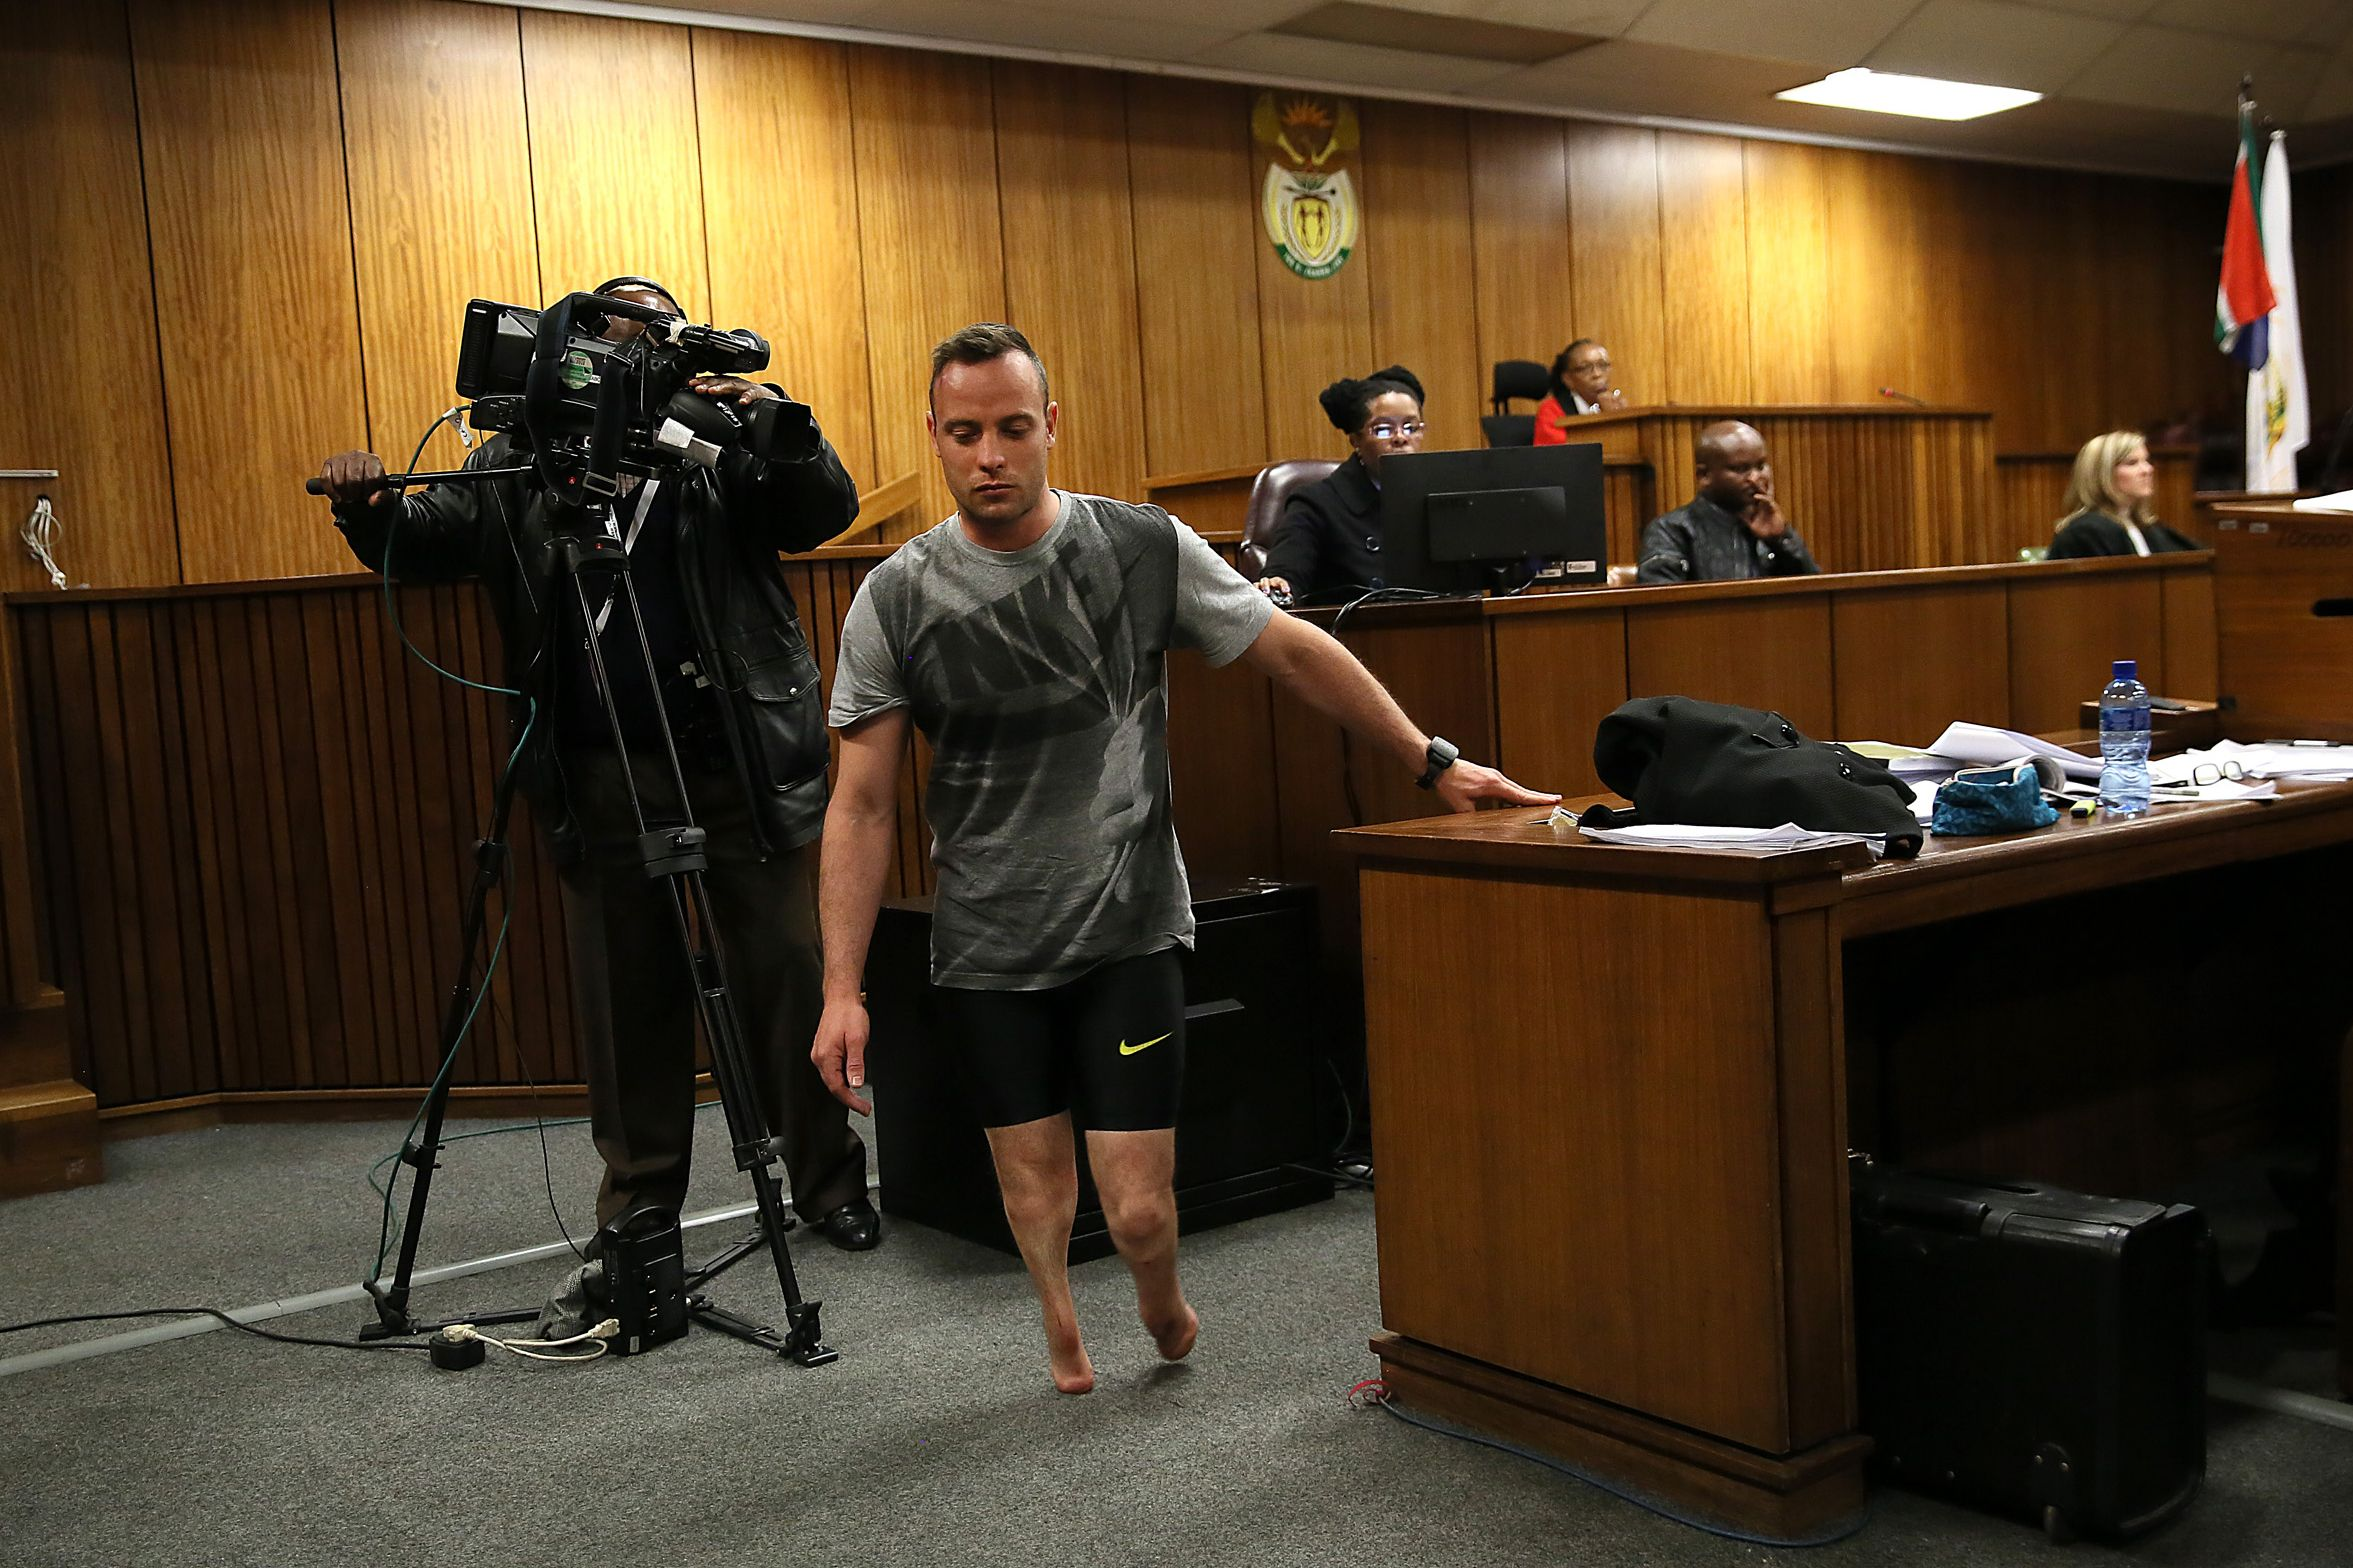 Oscar Pistorius walks without stumps